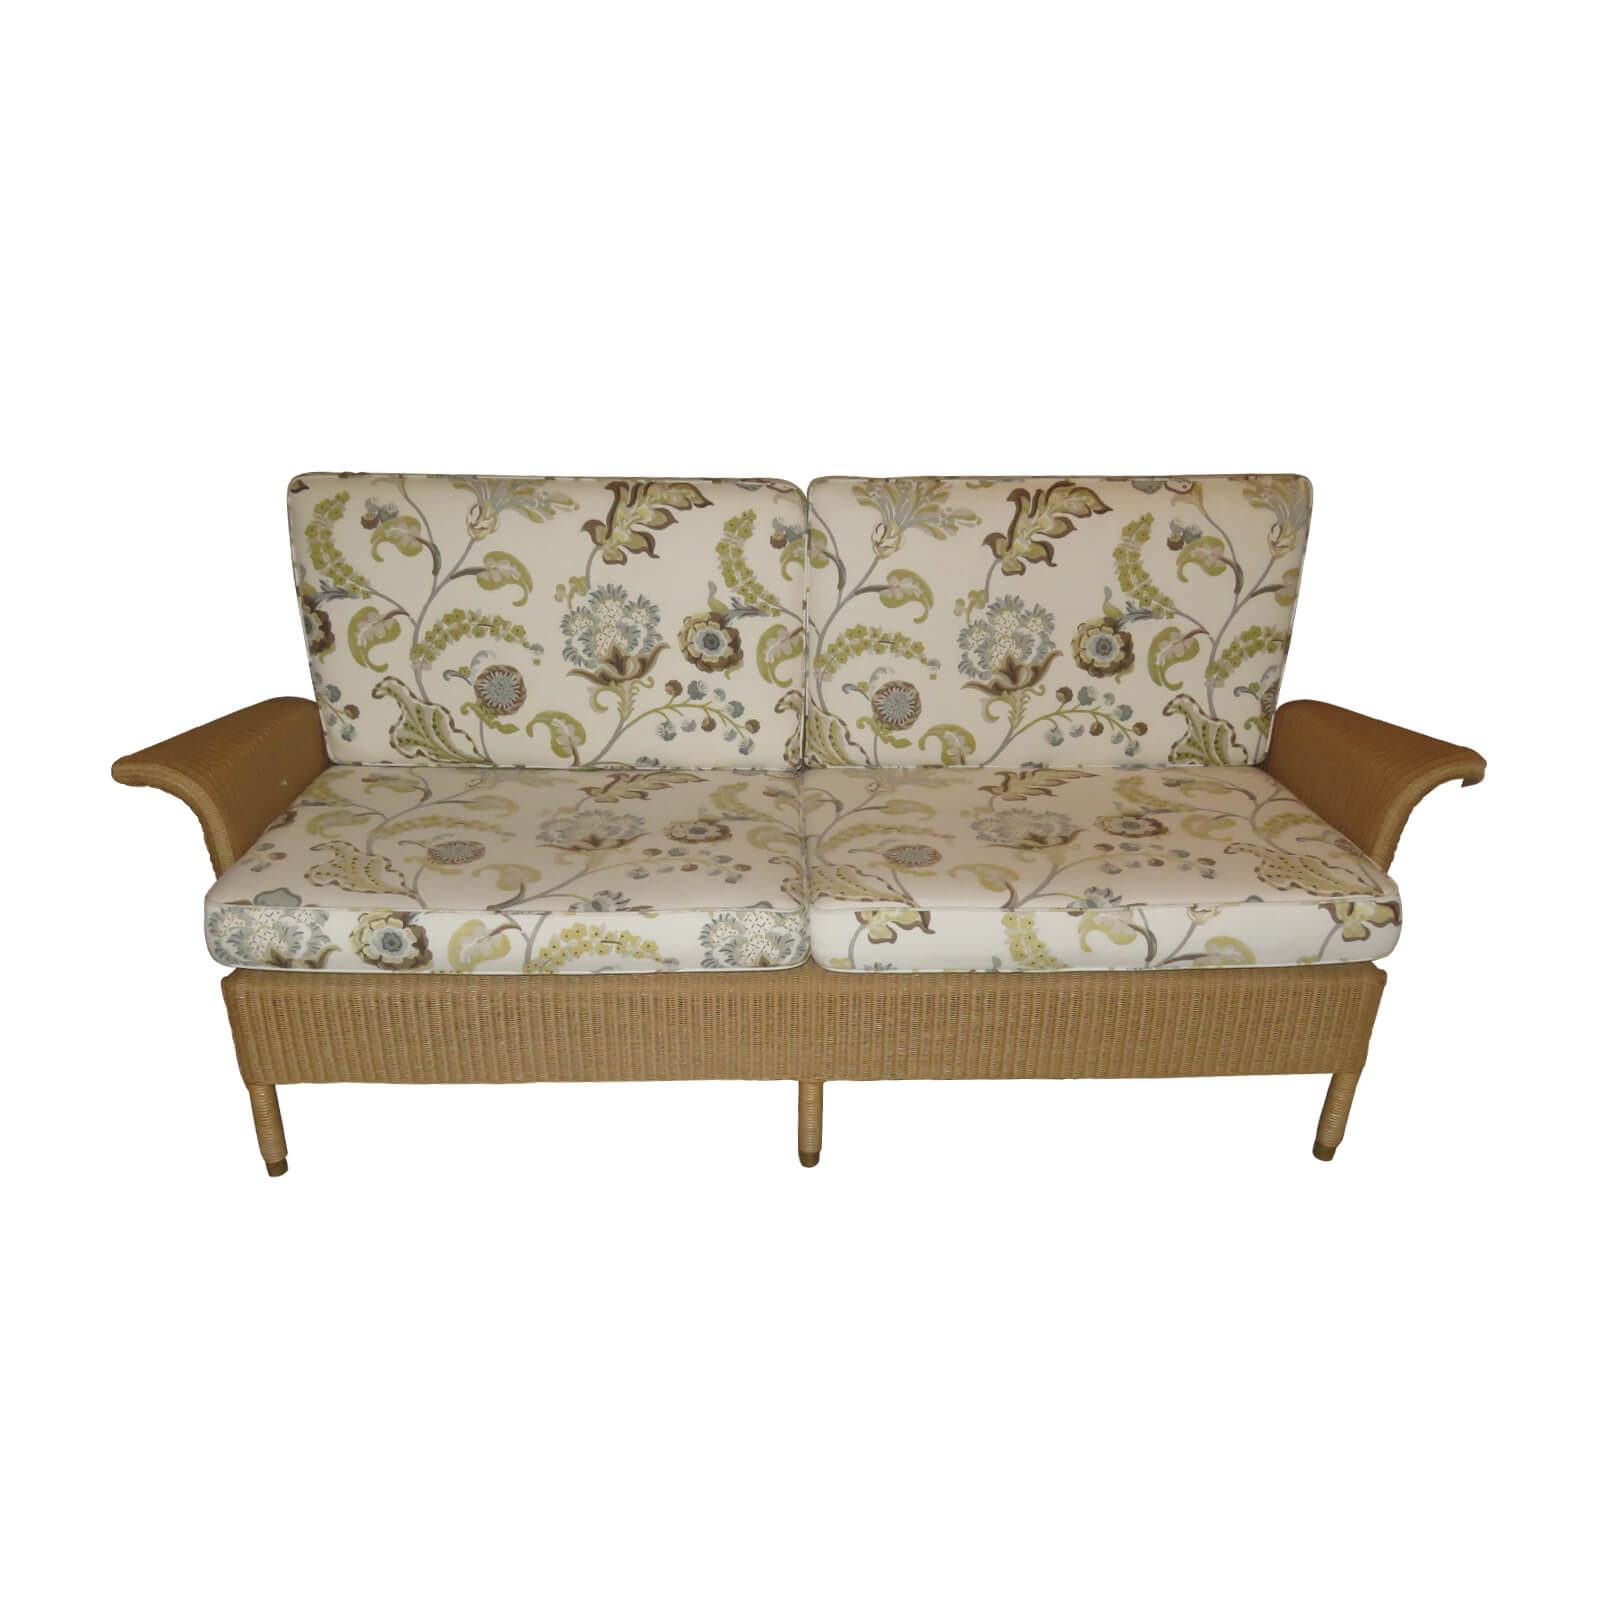 Two Design Lovers Cotswold Furniture sofa with cushions